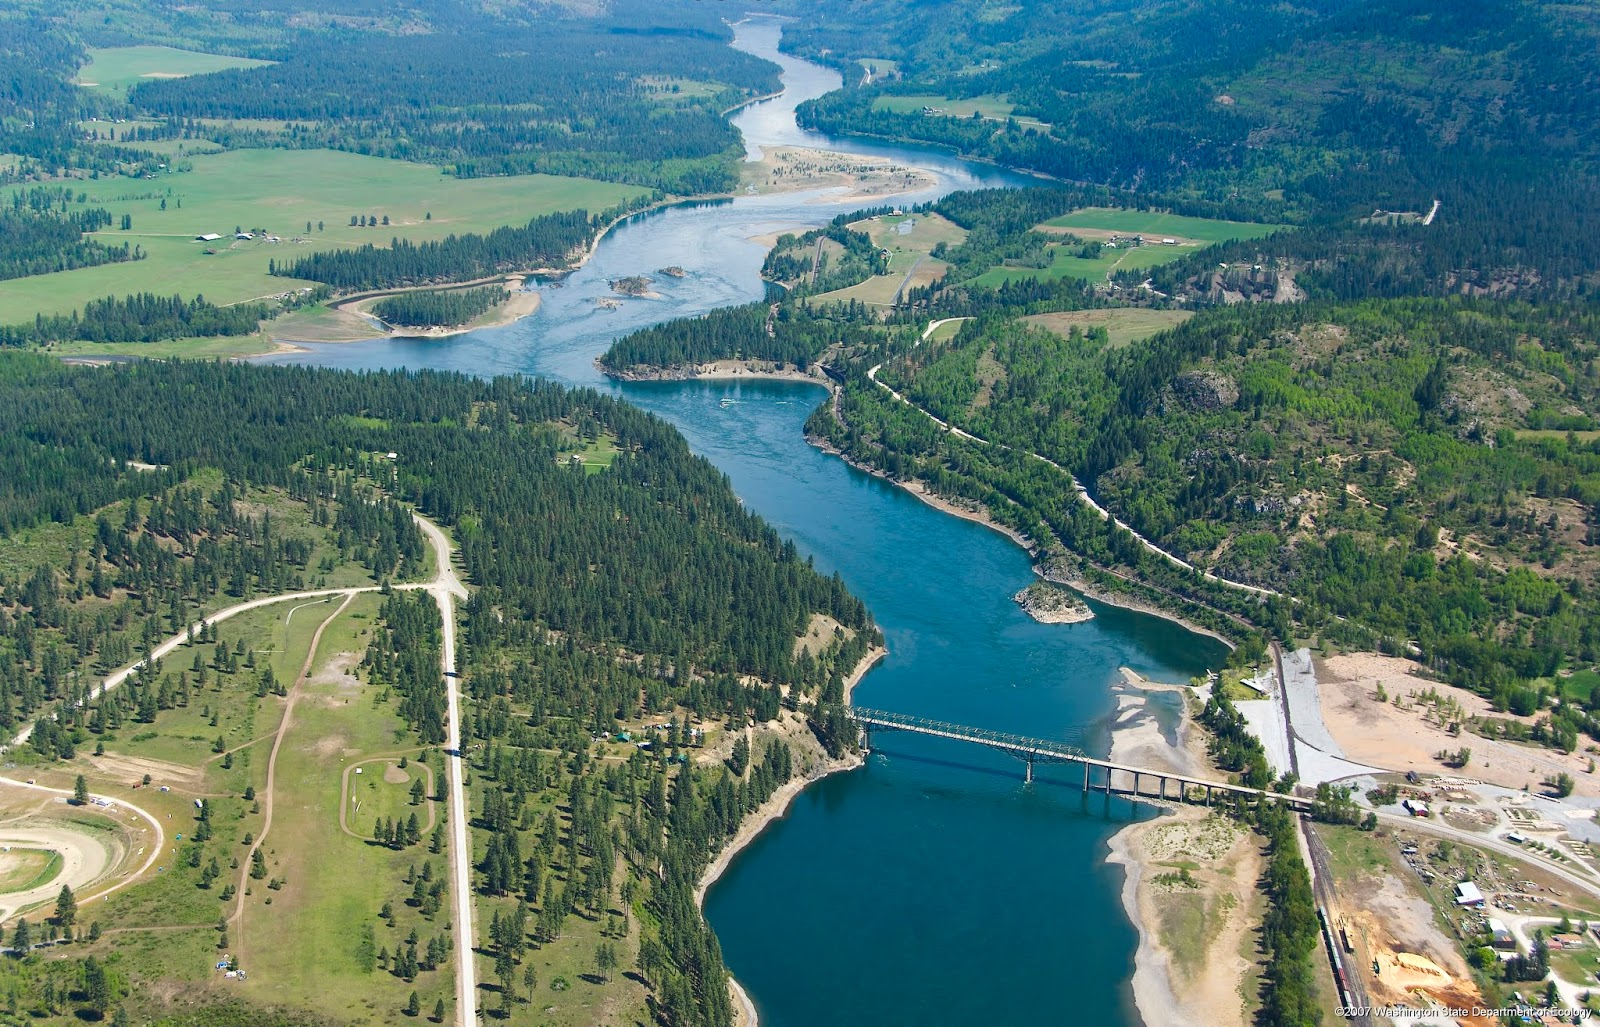 Aerial view of the Columbia River, surrounding forests and a bridge crossing the river